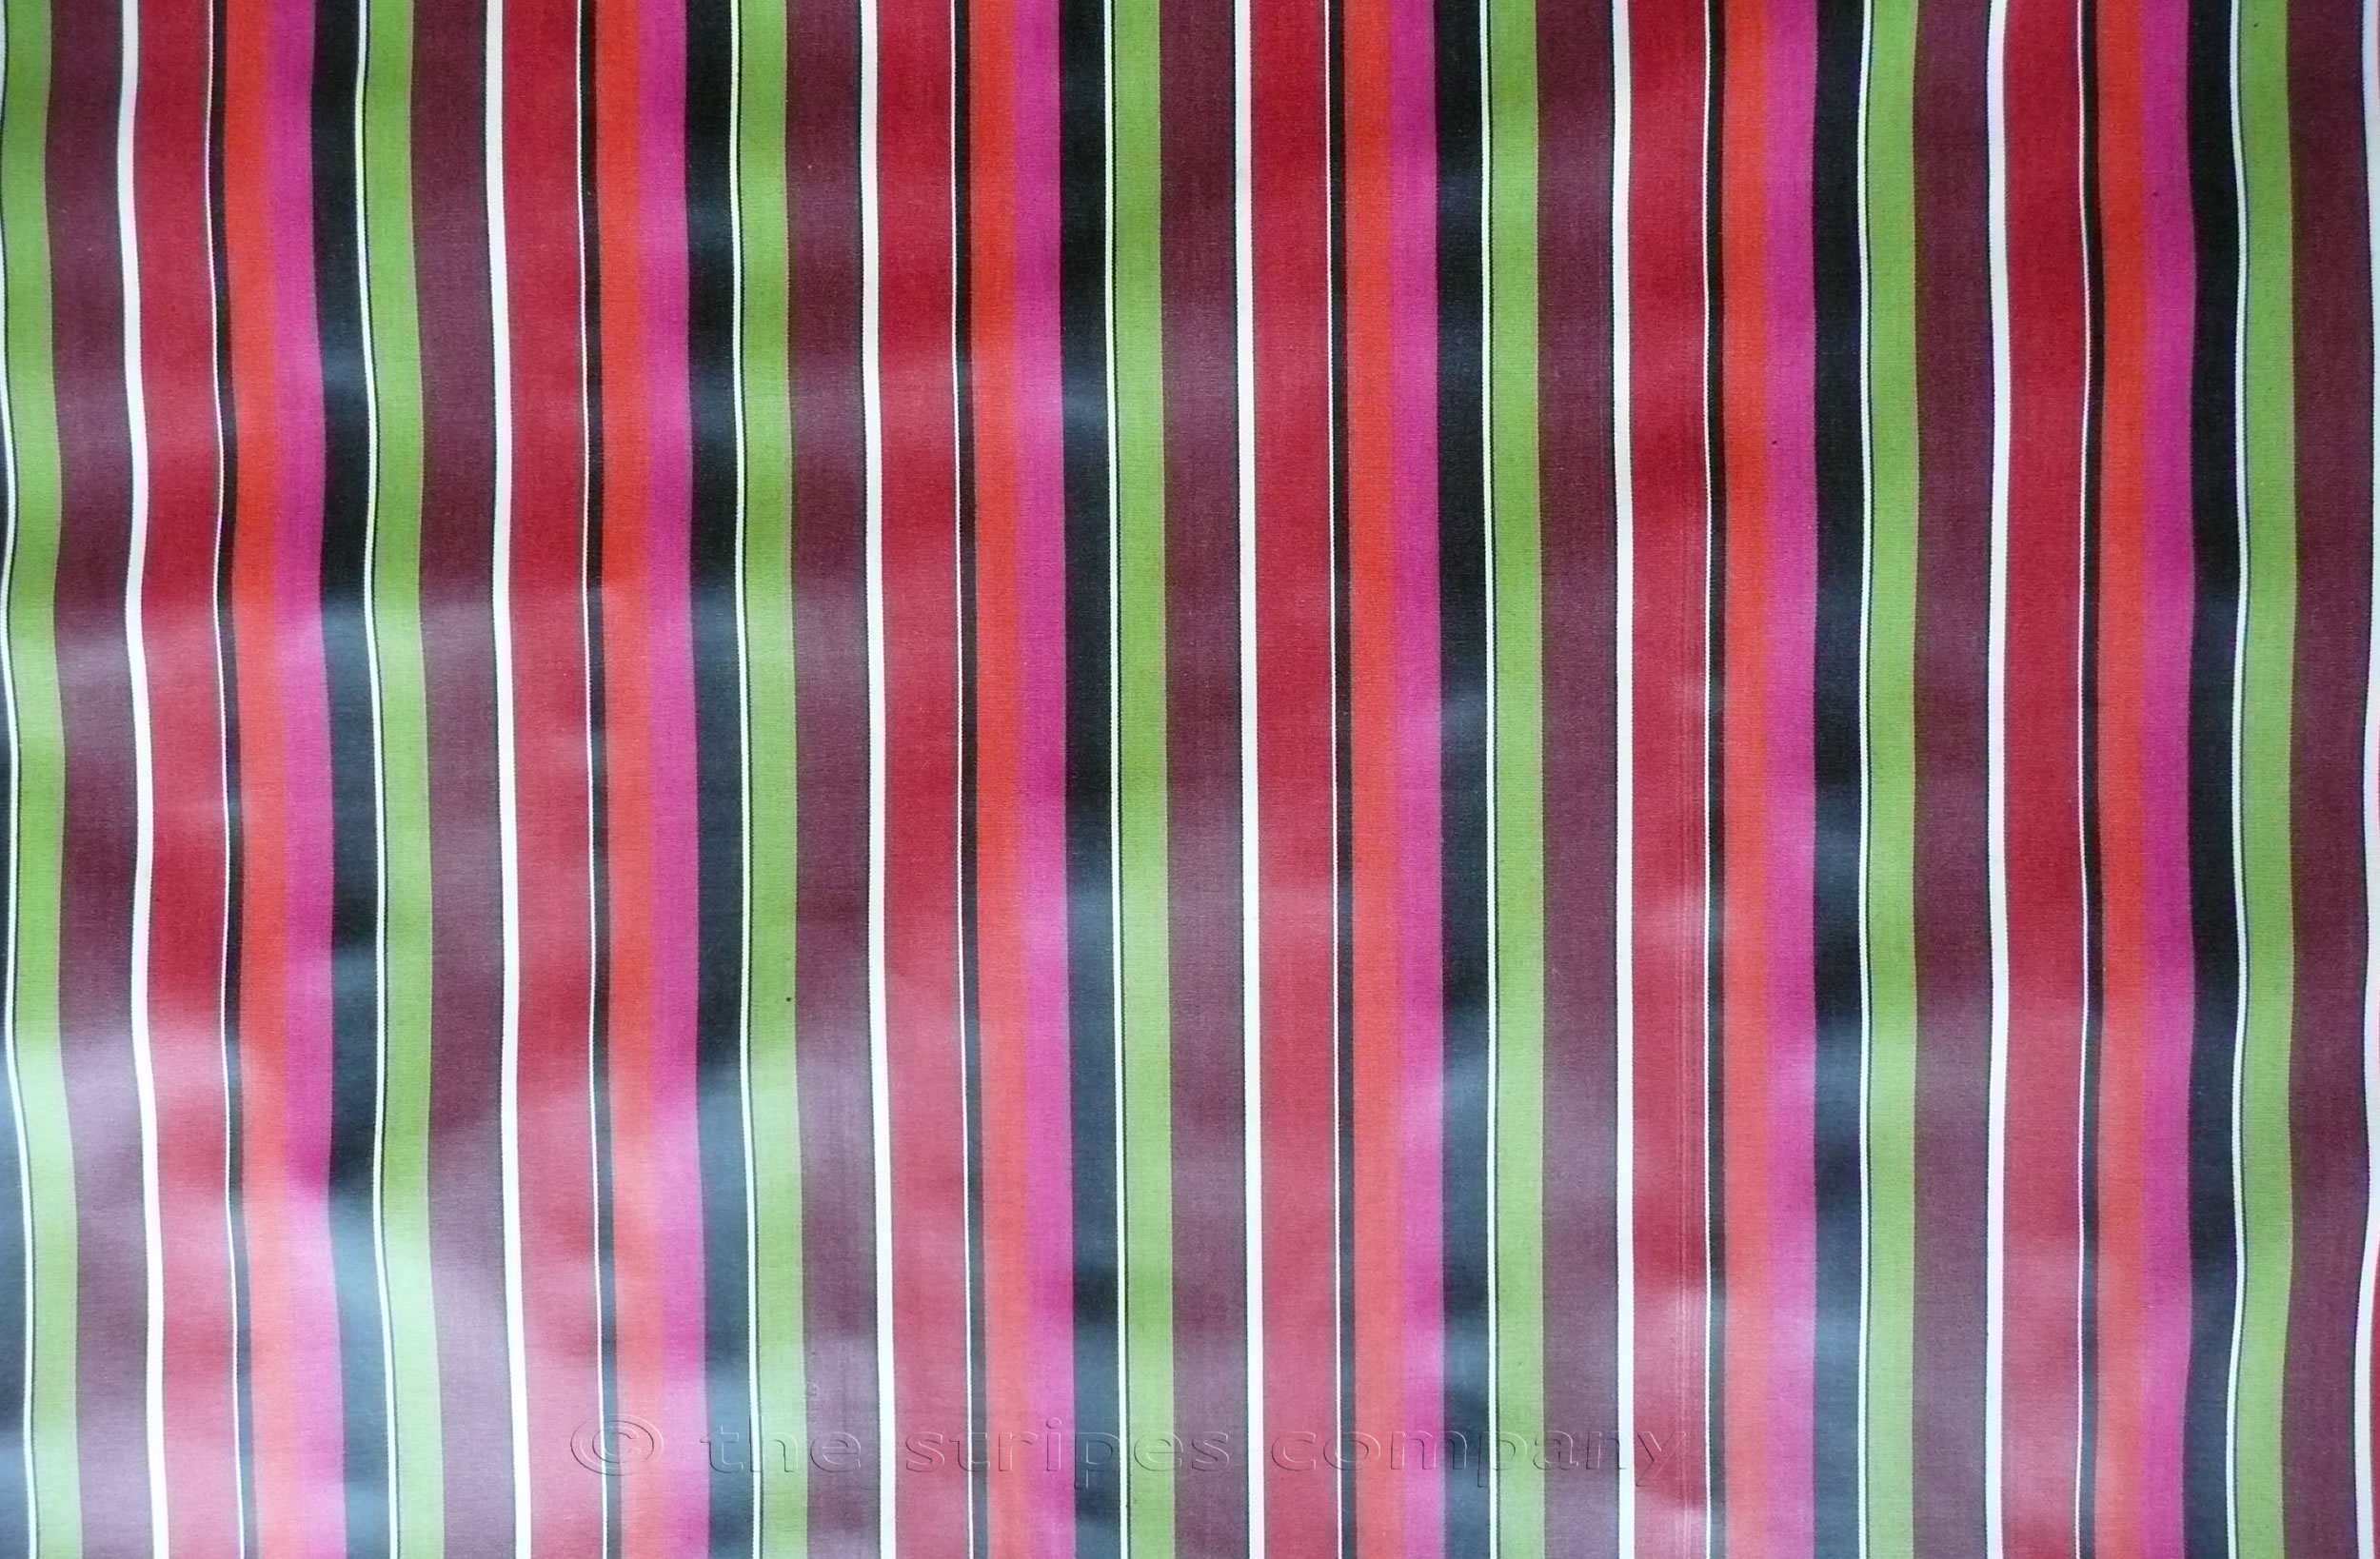 Pink, Coral, Black, Lime Green Striped Oilcloth Fabric | PVC Wipeable Fabrics